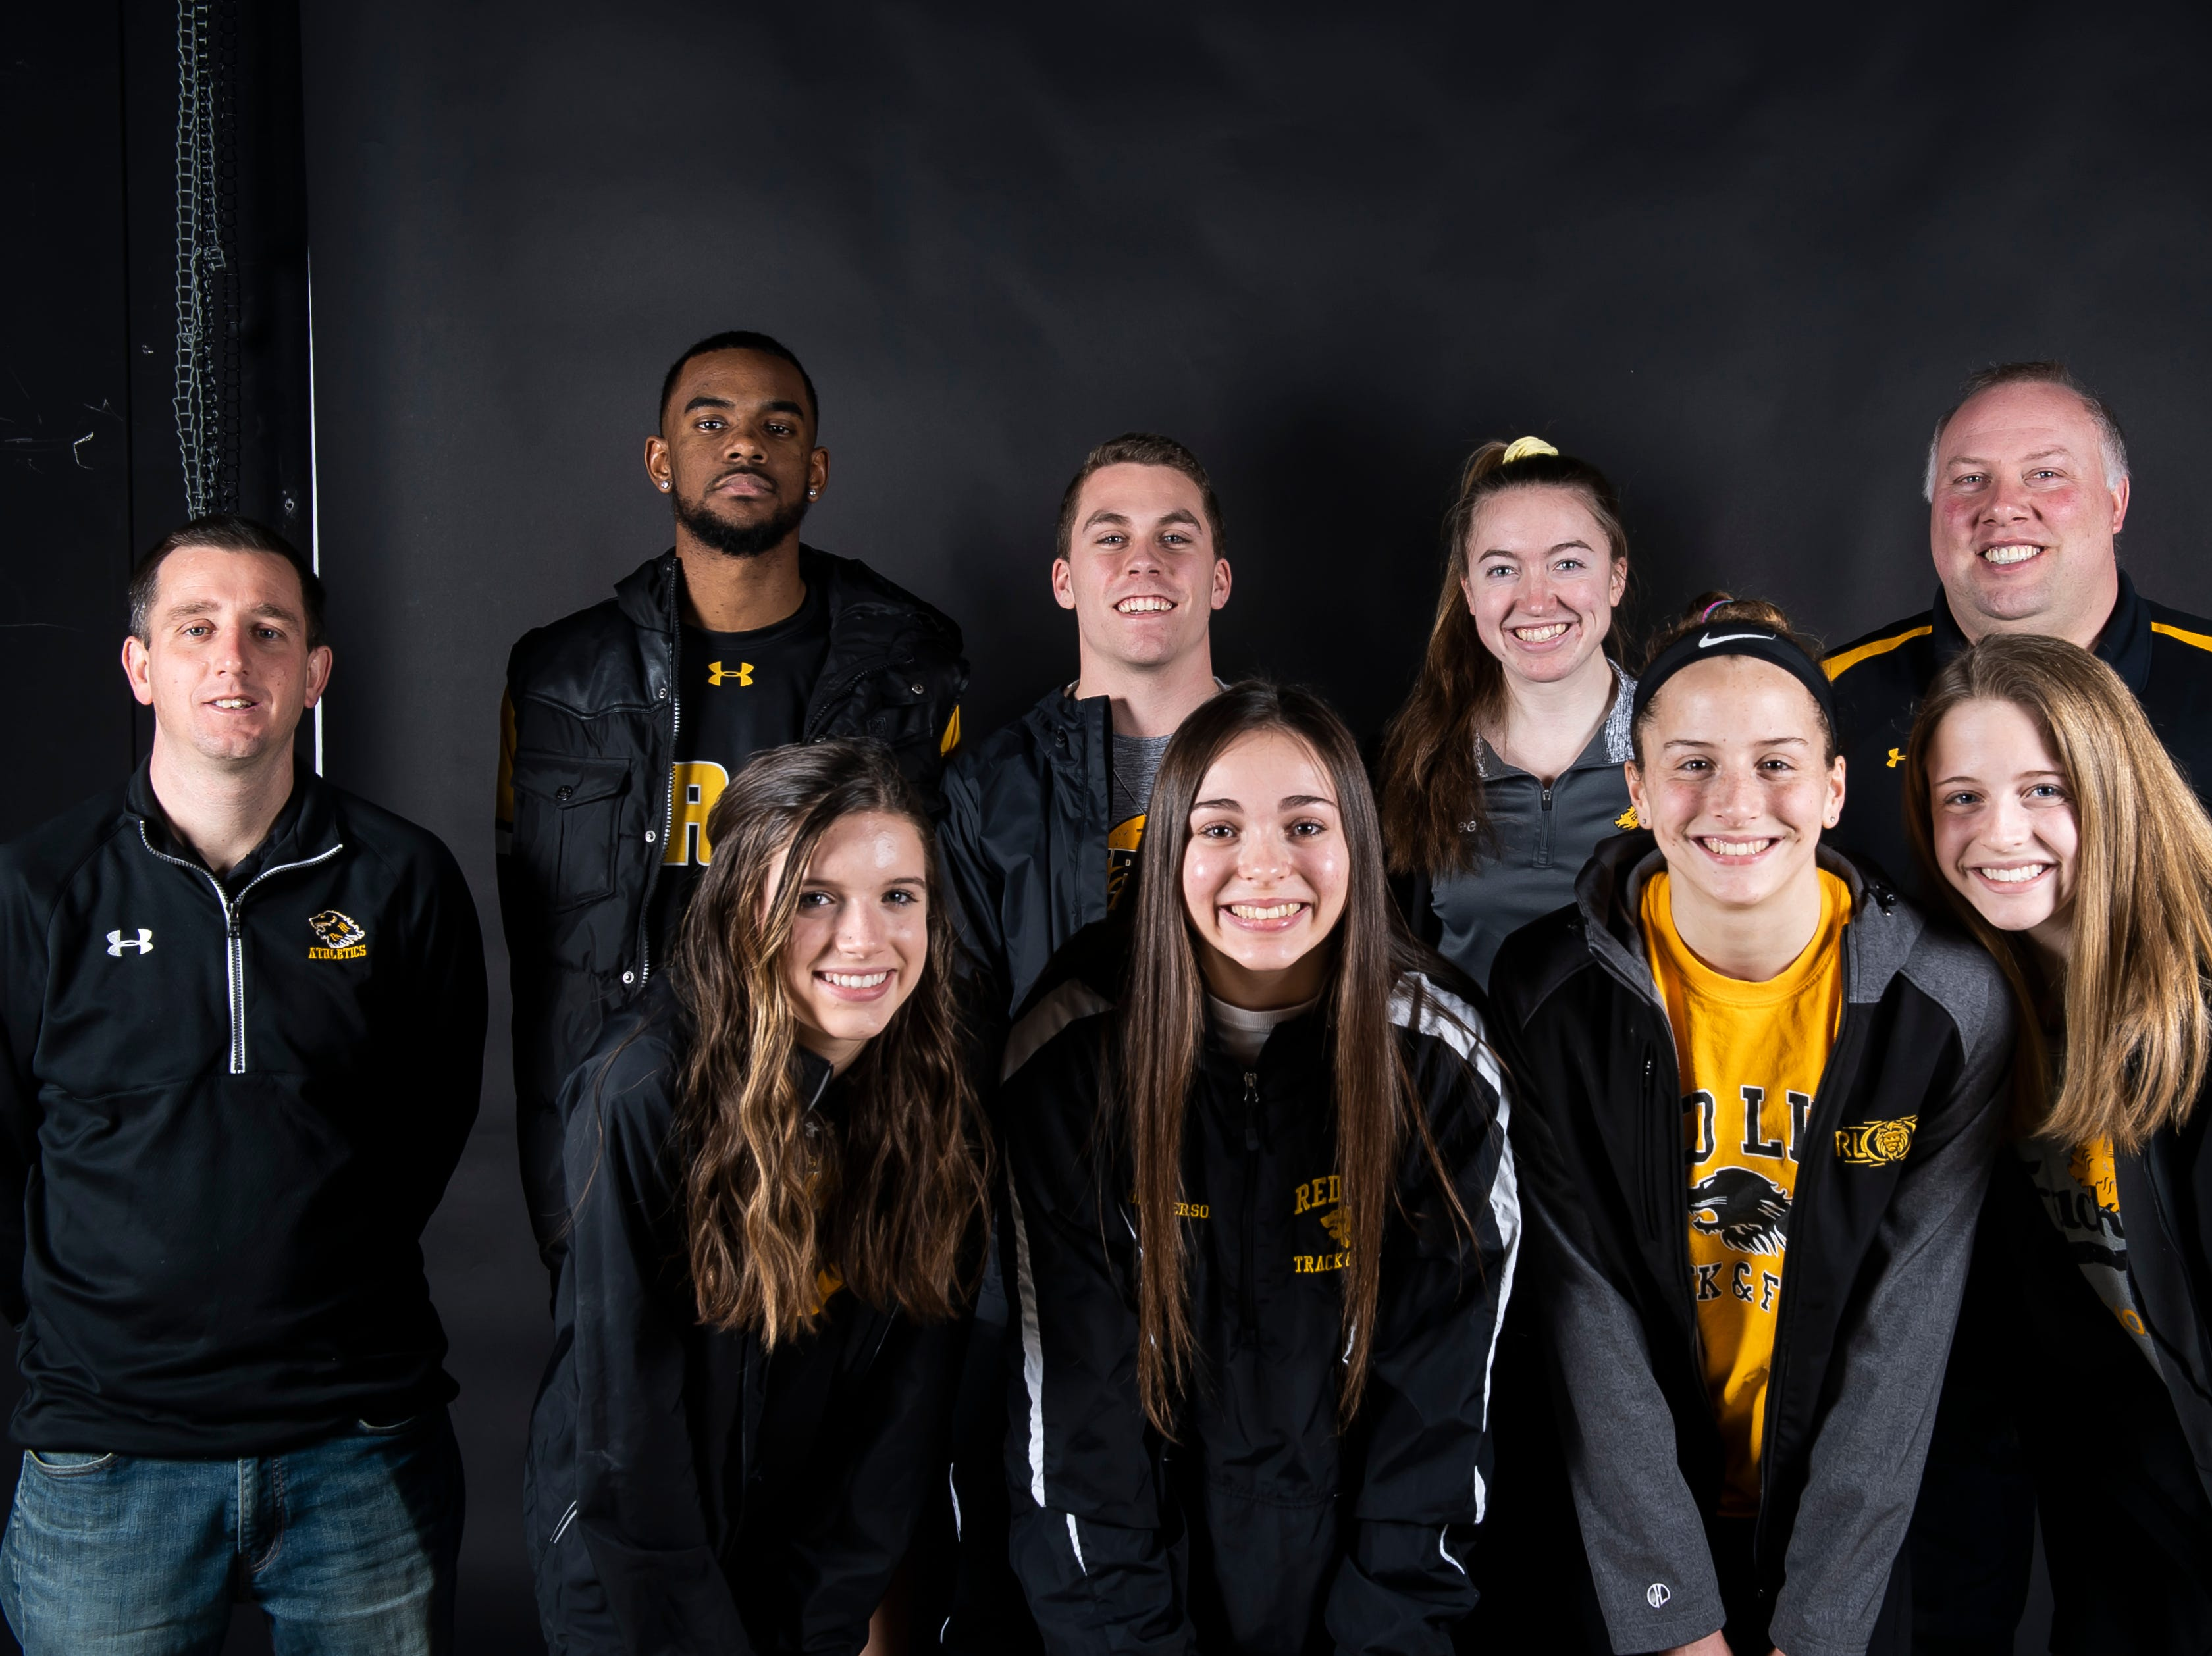 (From back left) Red Lion track and field's coach Todd Barshinger, Phill Douglass, Mitch Held, Kaylee Snyder, coach Jason Smith, Lily Hare, Sydney Beaverson, Kiersten Lloyd and Gwen Lloyd pose in the GameTimePA photo booth during spring sports media day in York Sunday, March 10, 2019.